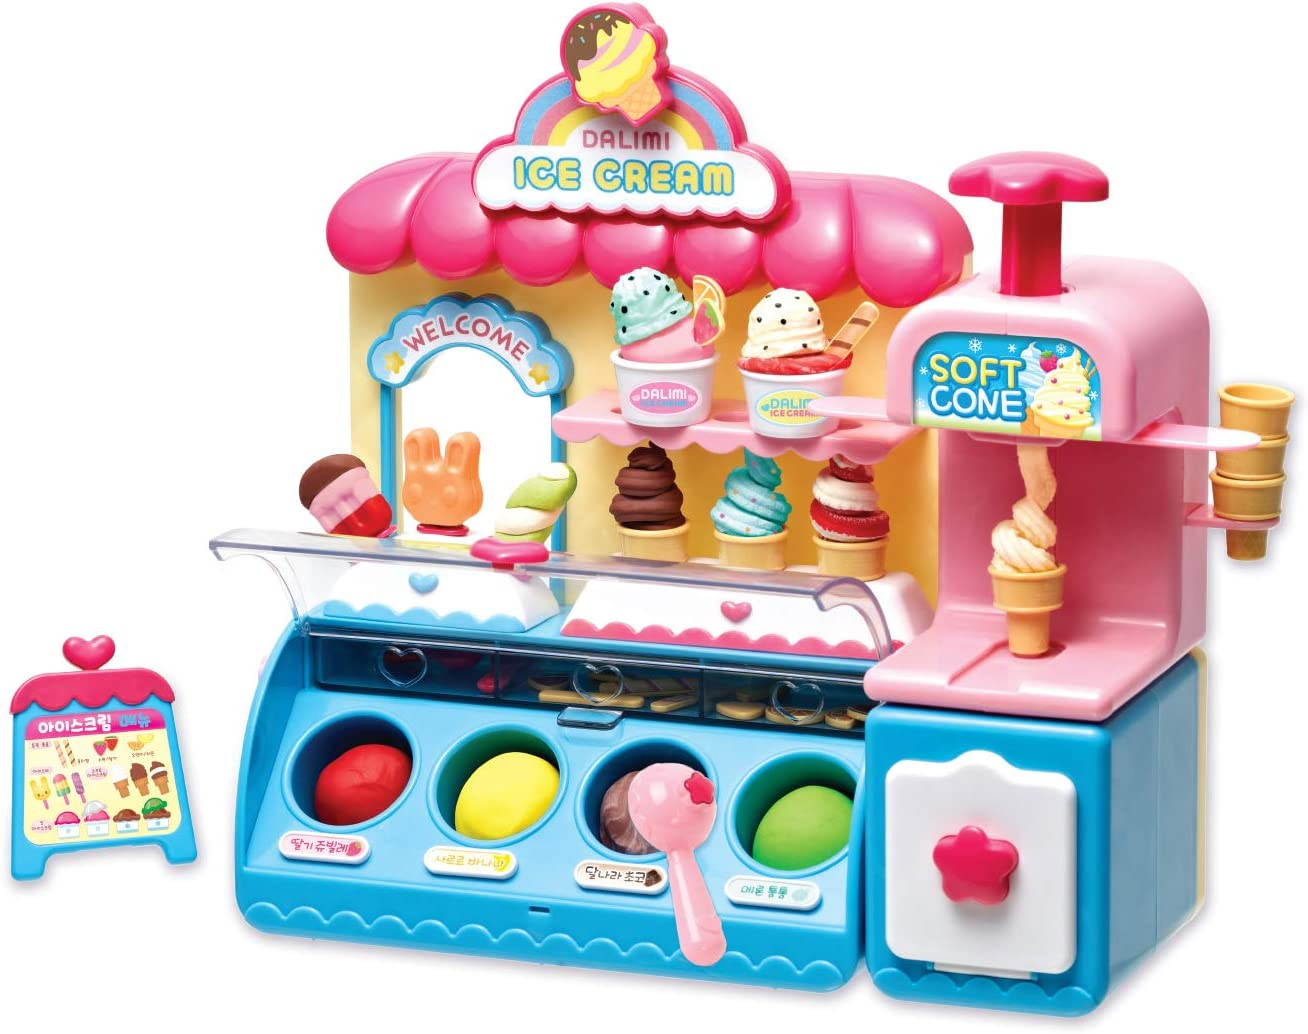 Dalimi TOYTRON, Ice Cream Store Set for Kids. Pretend Toys with Modeling Clay to Shape and decorates Ice Creams. Play Food Toys for Toddlers from Ages 3 Years and Up.